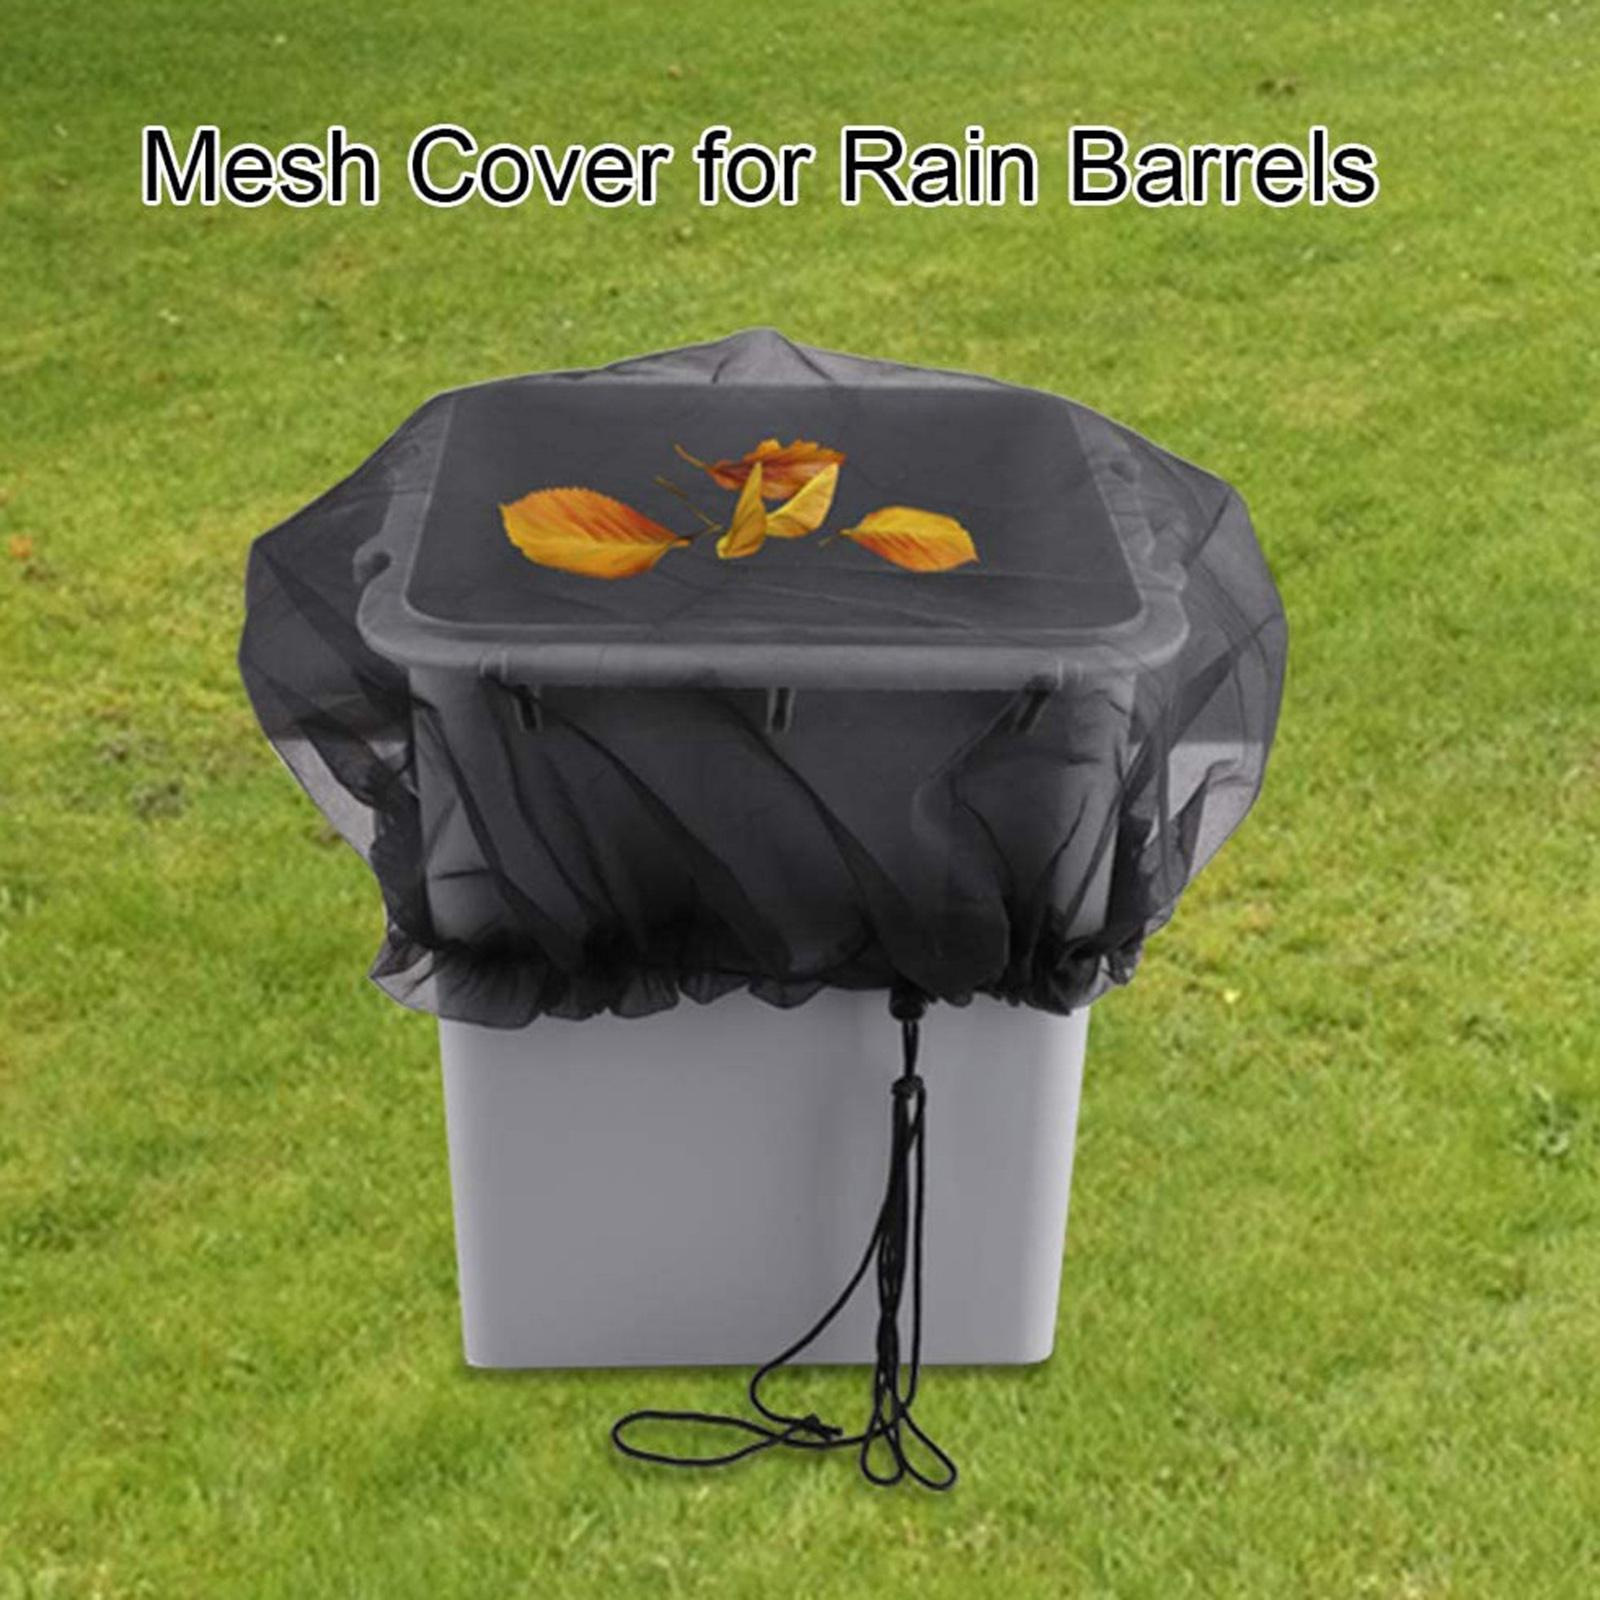 Mesh Cover Protector for Rain Barrels Accessories Easy Install w/Drawstring